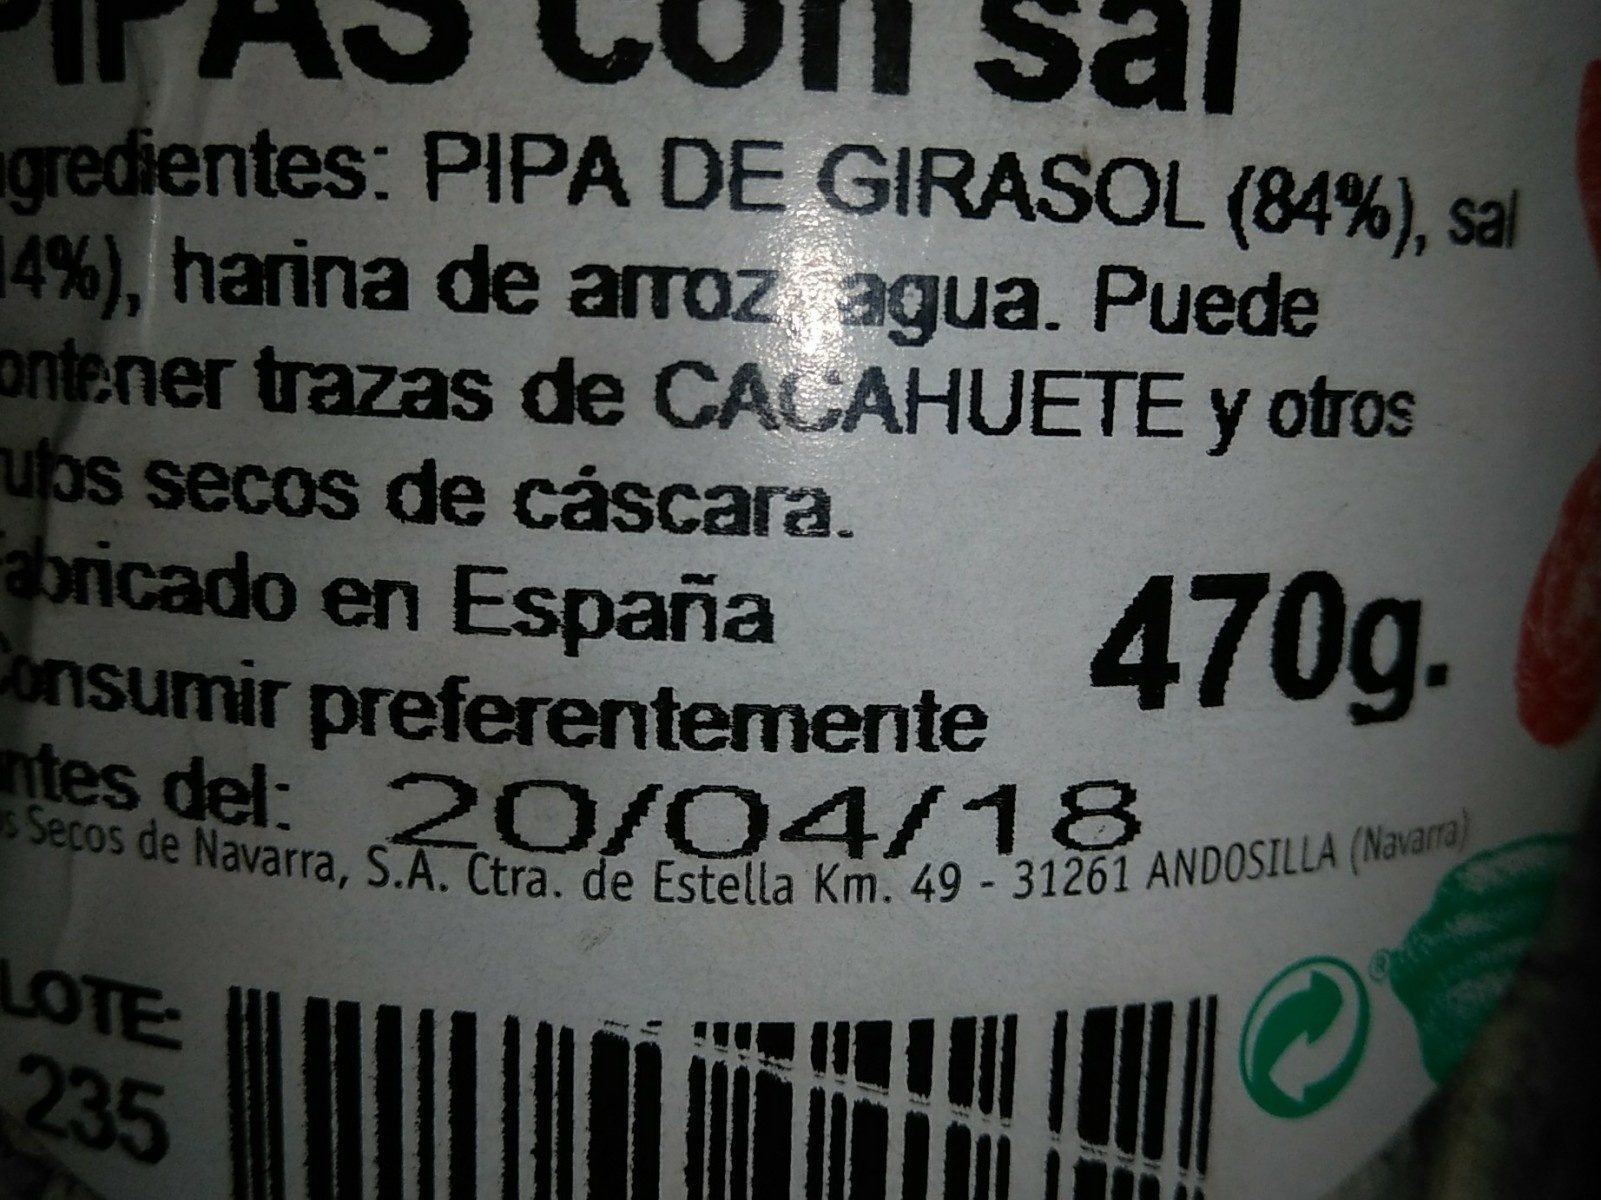 Pipas con sal - Ingredients - fr